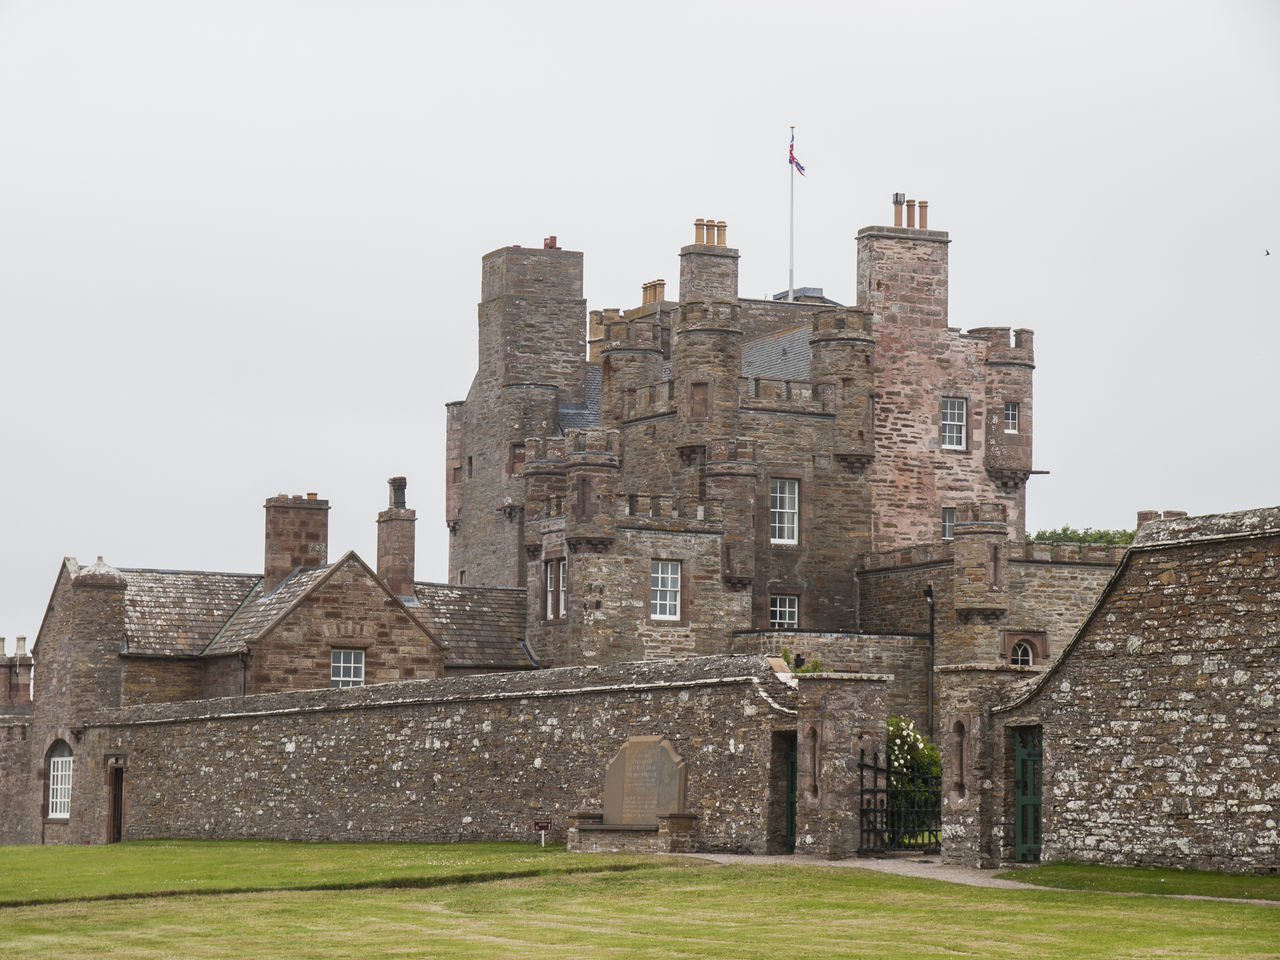 The Queen Mothers Castle of Mey Scotland.The castle was in a semi-derelict state when, in 1952, it and its policies (attached lands) were purchased by Queen Elizabeth The Queen Mother, the widow of King George VI who had died earlier in the year. The Queen Mother set about restoring the castle for use as a holiday home, removing some of the 19th-century additions, and reinstating the Castle's original name. She regularly visited it in August and October from 1955 until her death in March 2002, the last visit being in October 2001. Animal Themes Architecture Bird Building Exterior Built Structure Castle Castle Of Mey Clear Sky Day Field Flying Grass Green Color Medieval Outdoors Rural Scene Scotland. Tall - High The Queen Mother Tourism Tranquility Travel Destinations Vivid International